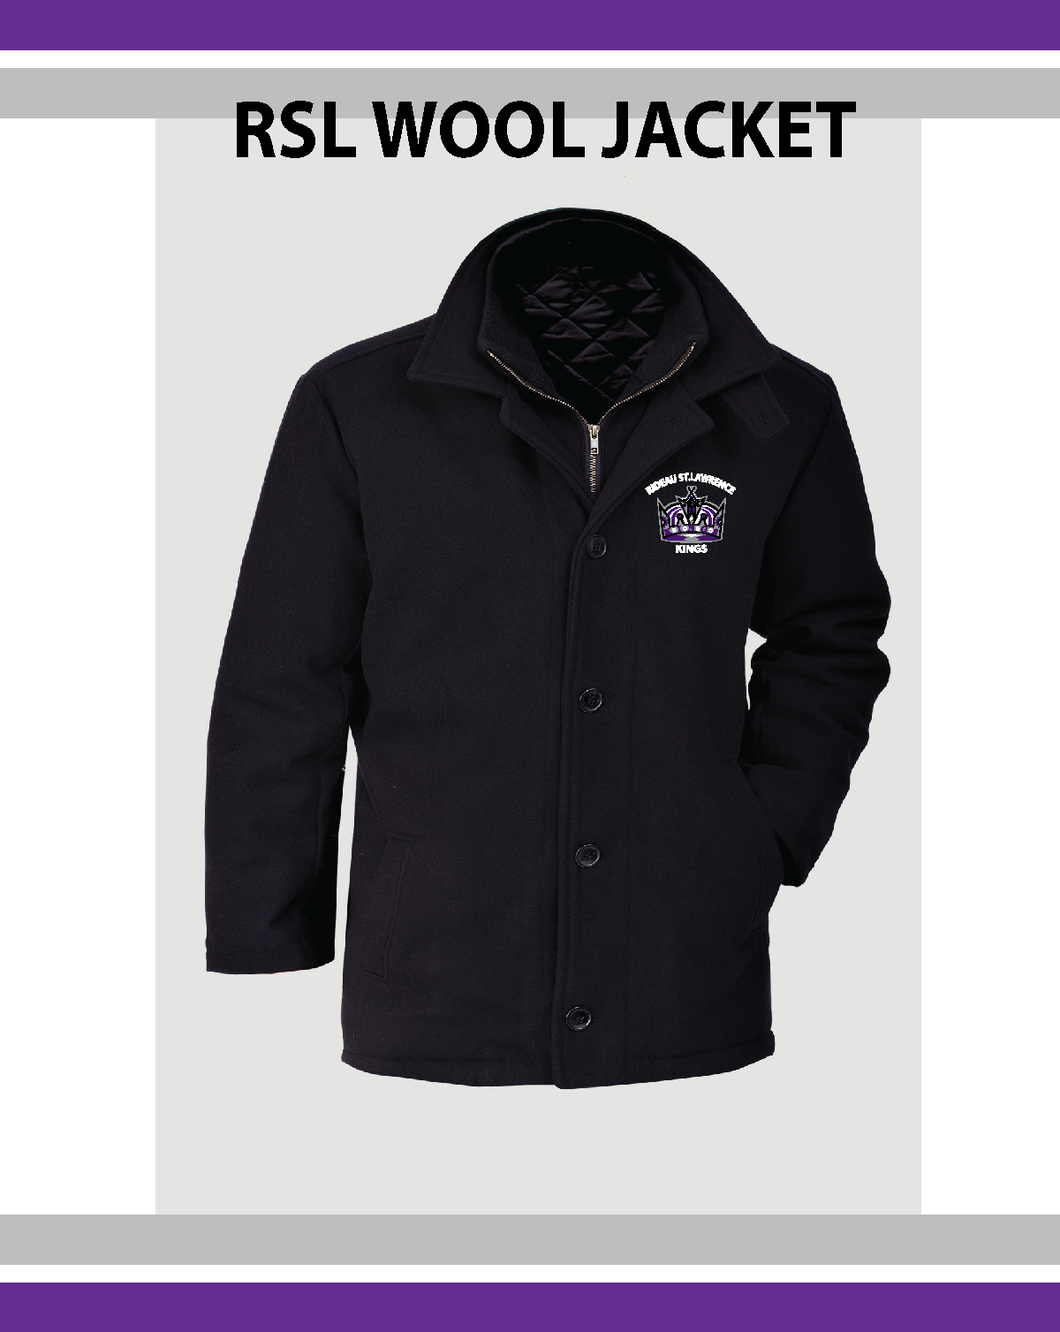 RSL Kings- Wool Jacket